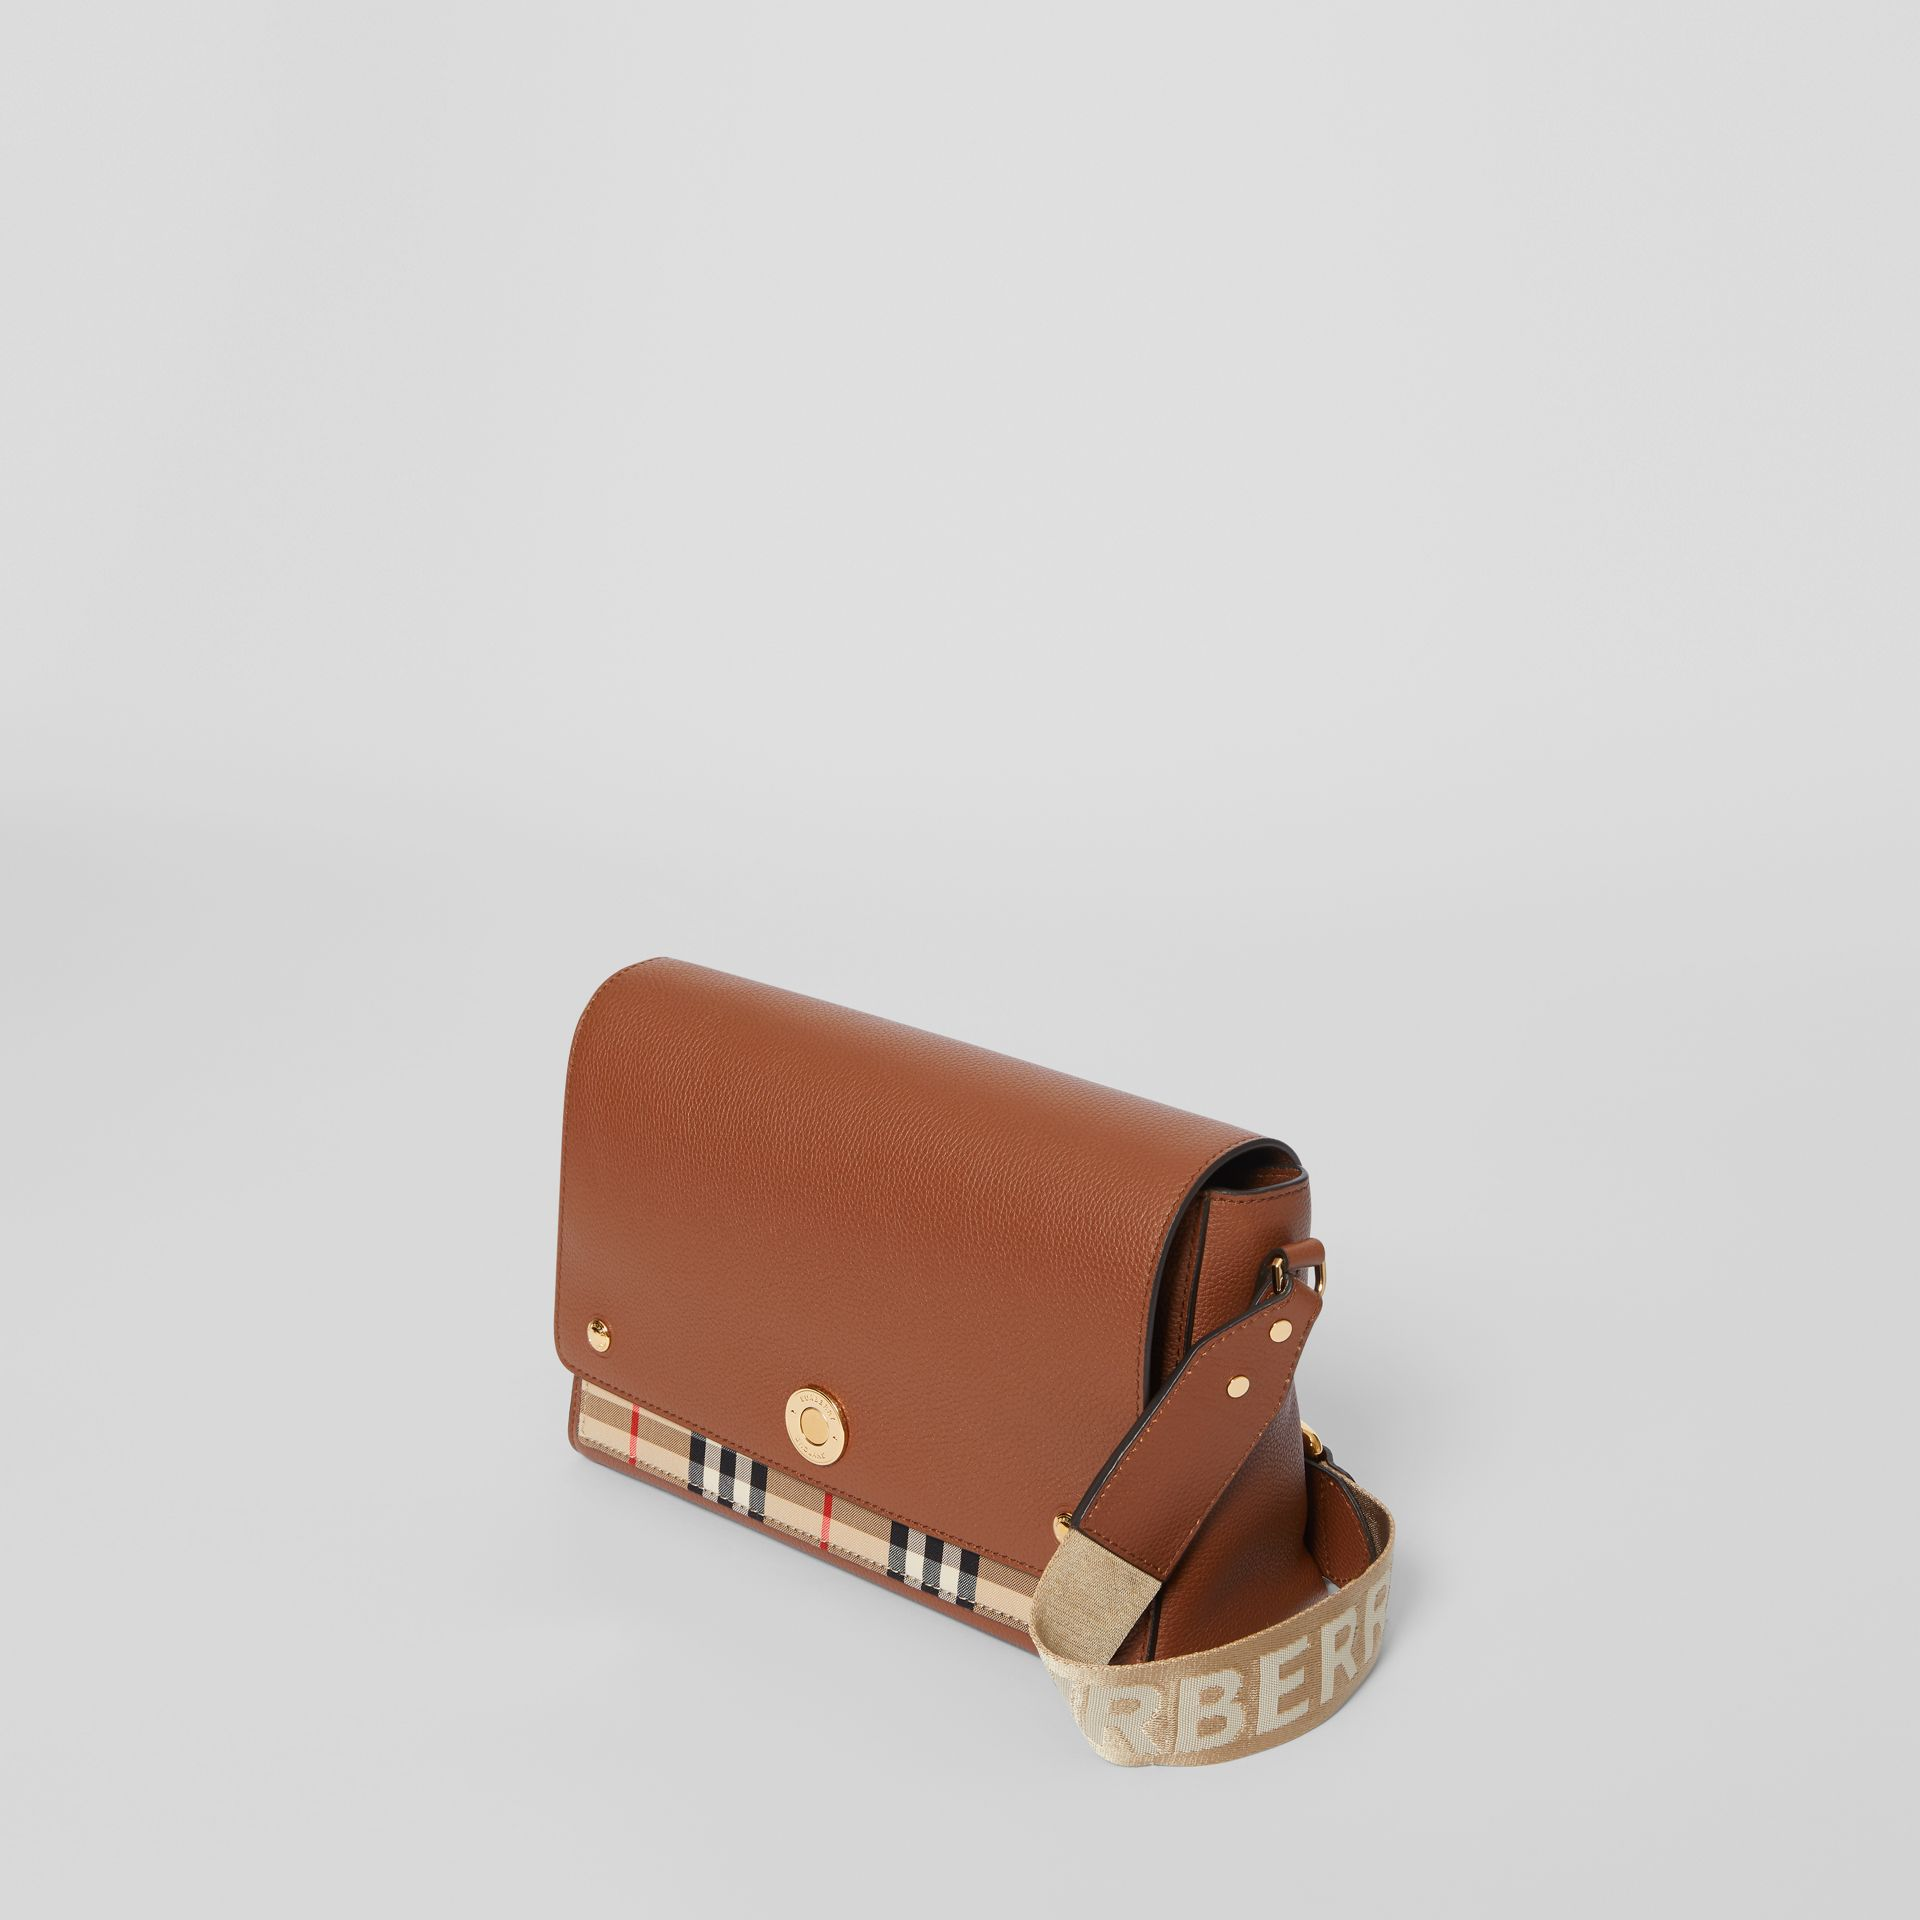 Leather and Vintage Check Note Crossbody Bag in Tan - Women | Burberry Canada - gallery image 3